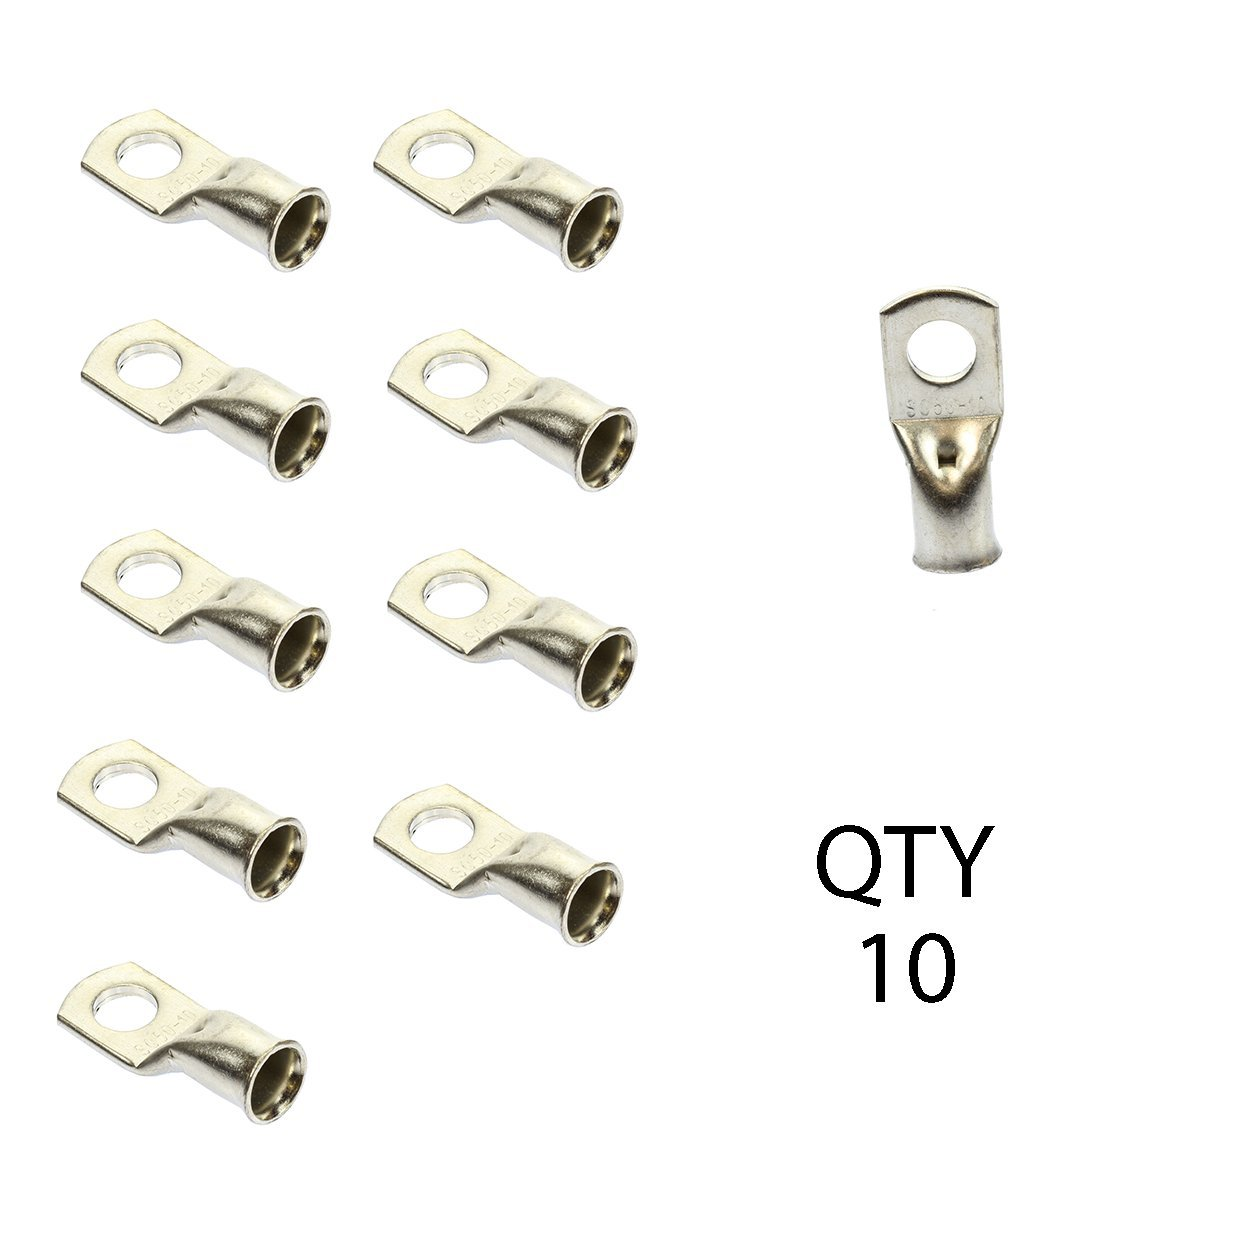 1/0 AWG gauge 3/8'' non-insulated Nickel pl copper Ring Terminal Lug QTY 10 Pack